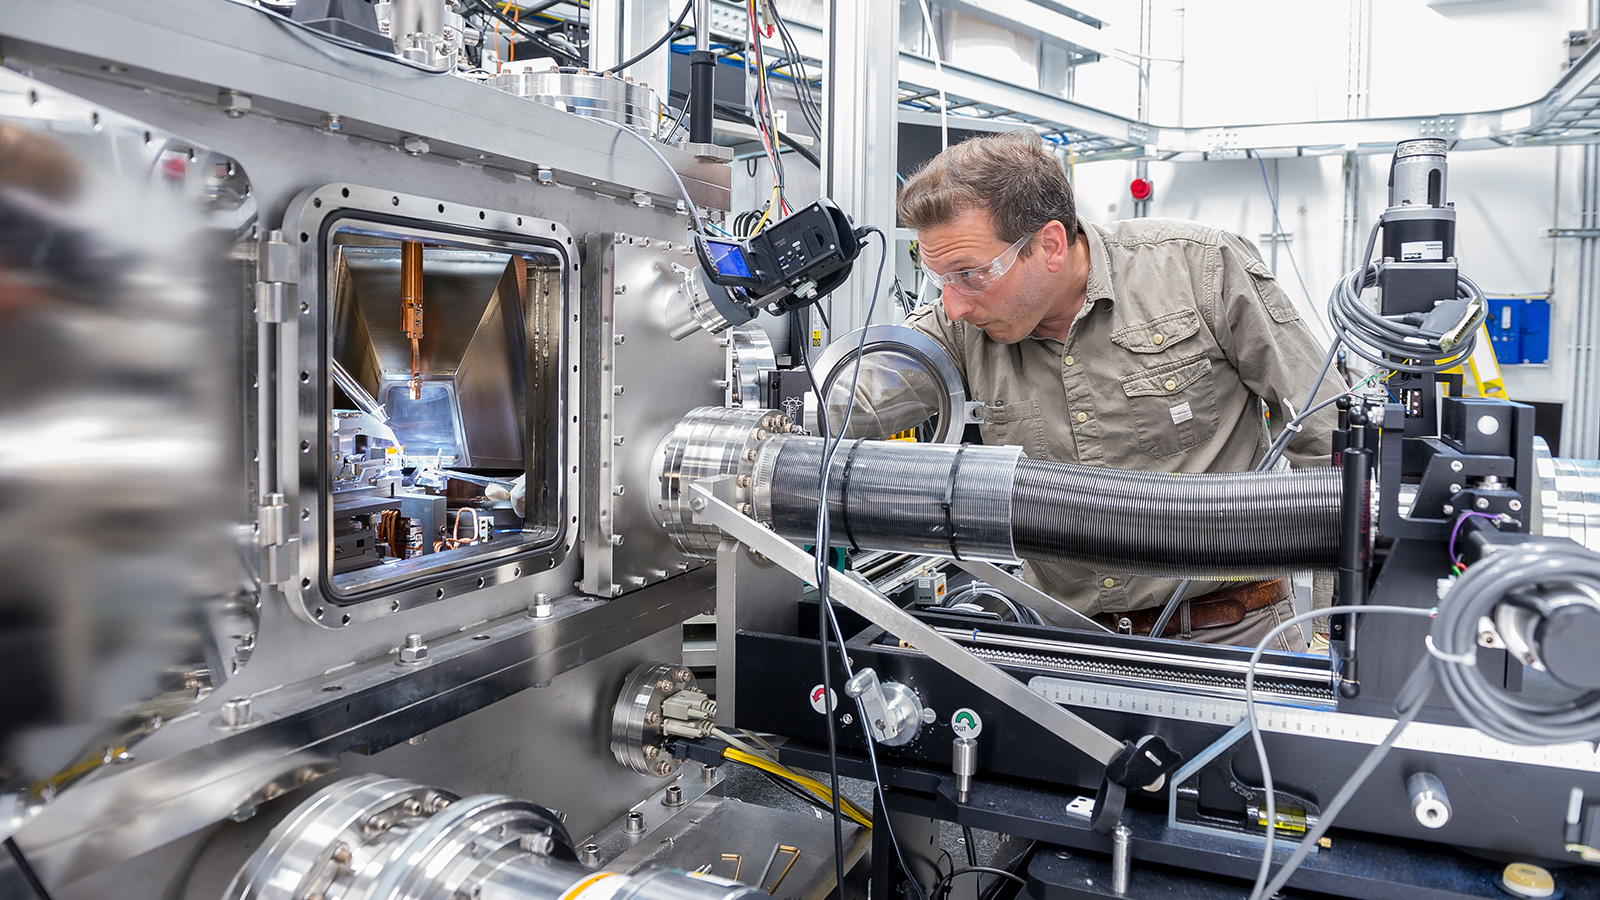 Argonne nanoscientist Martin Holt took X-ray images of the acoustic wave through the use of the Hard X-ray Nanoprobe at the Center for Nanoscale Materials and Advanced Photon Source, both U.S. Department of Energy user facilities at Argonne National Laboratory.